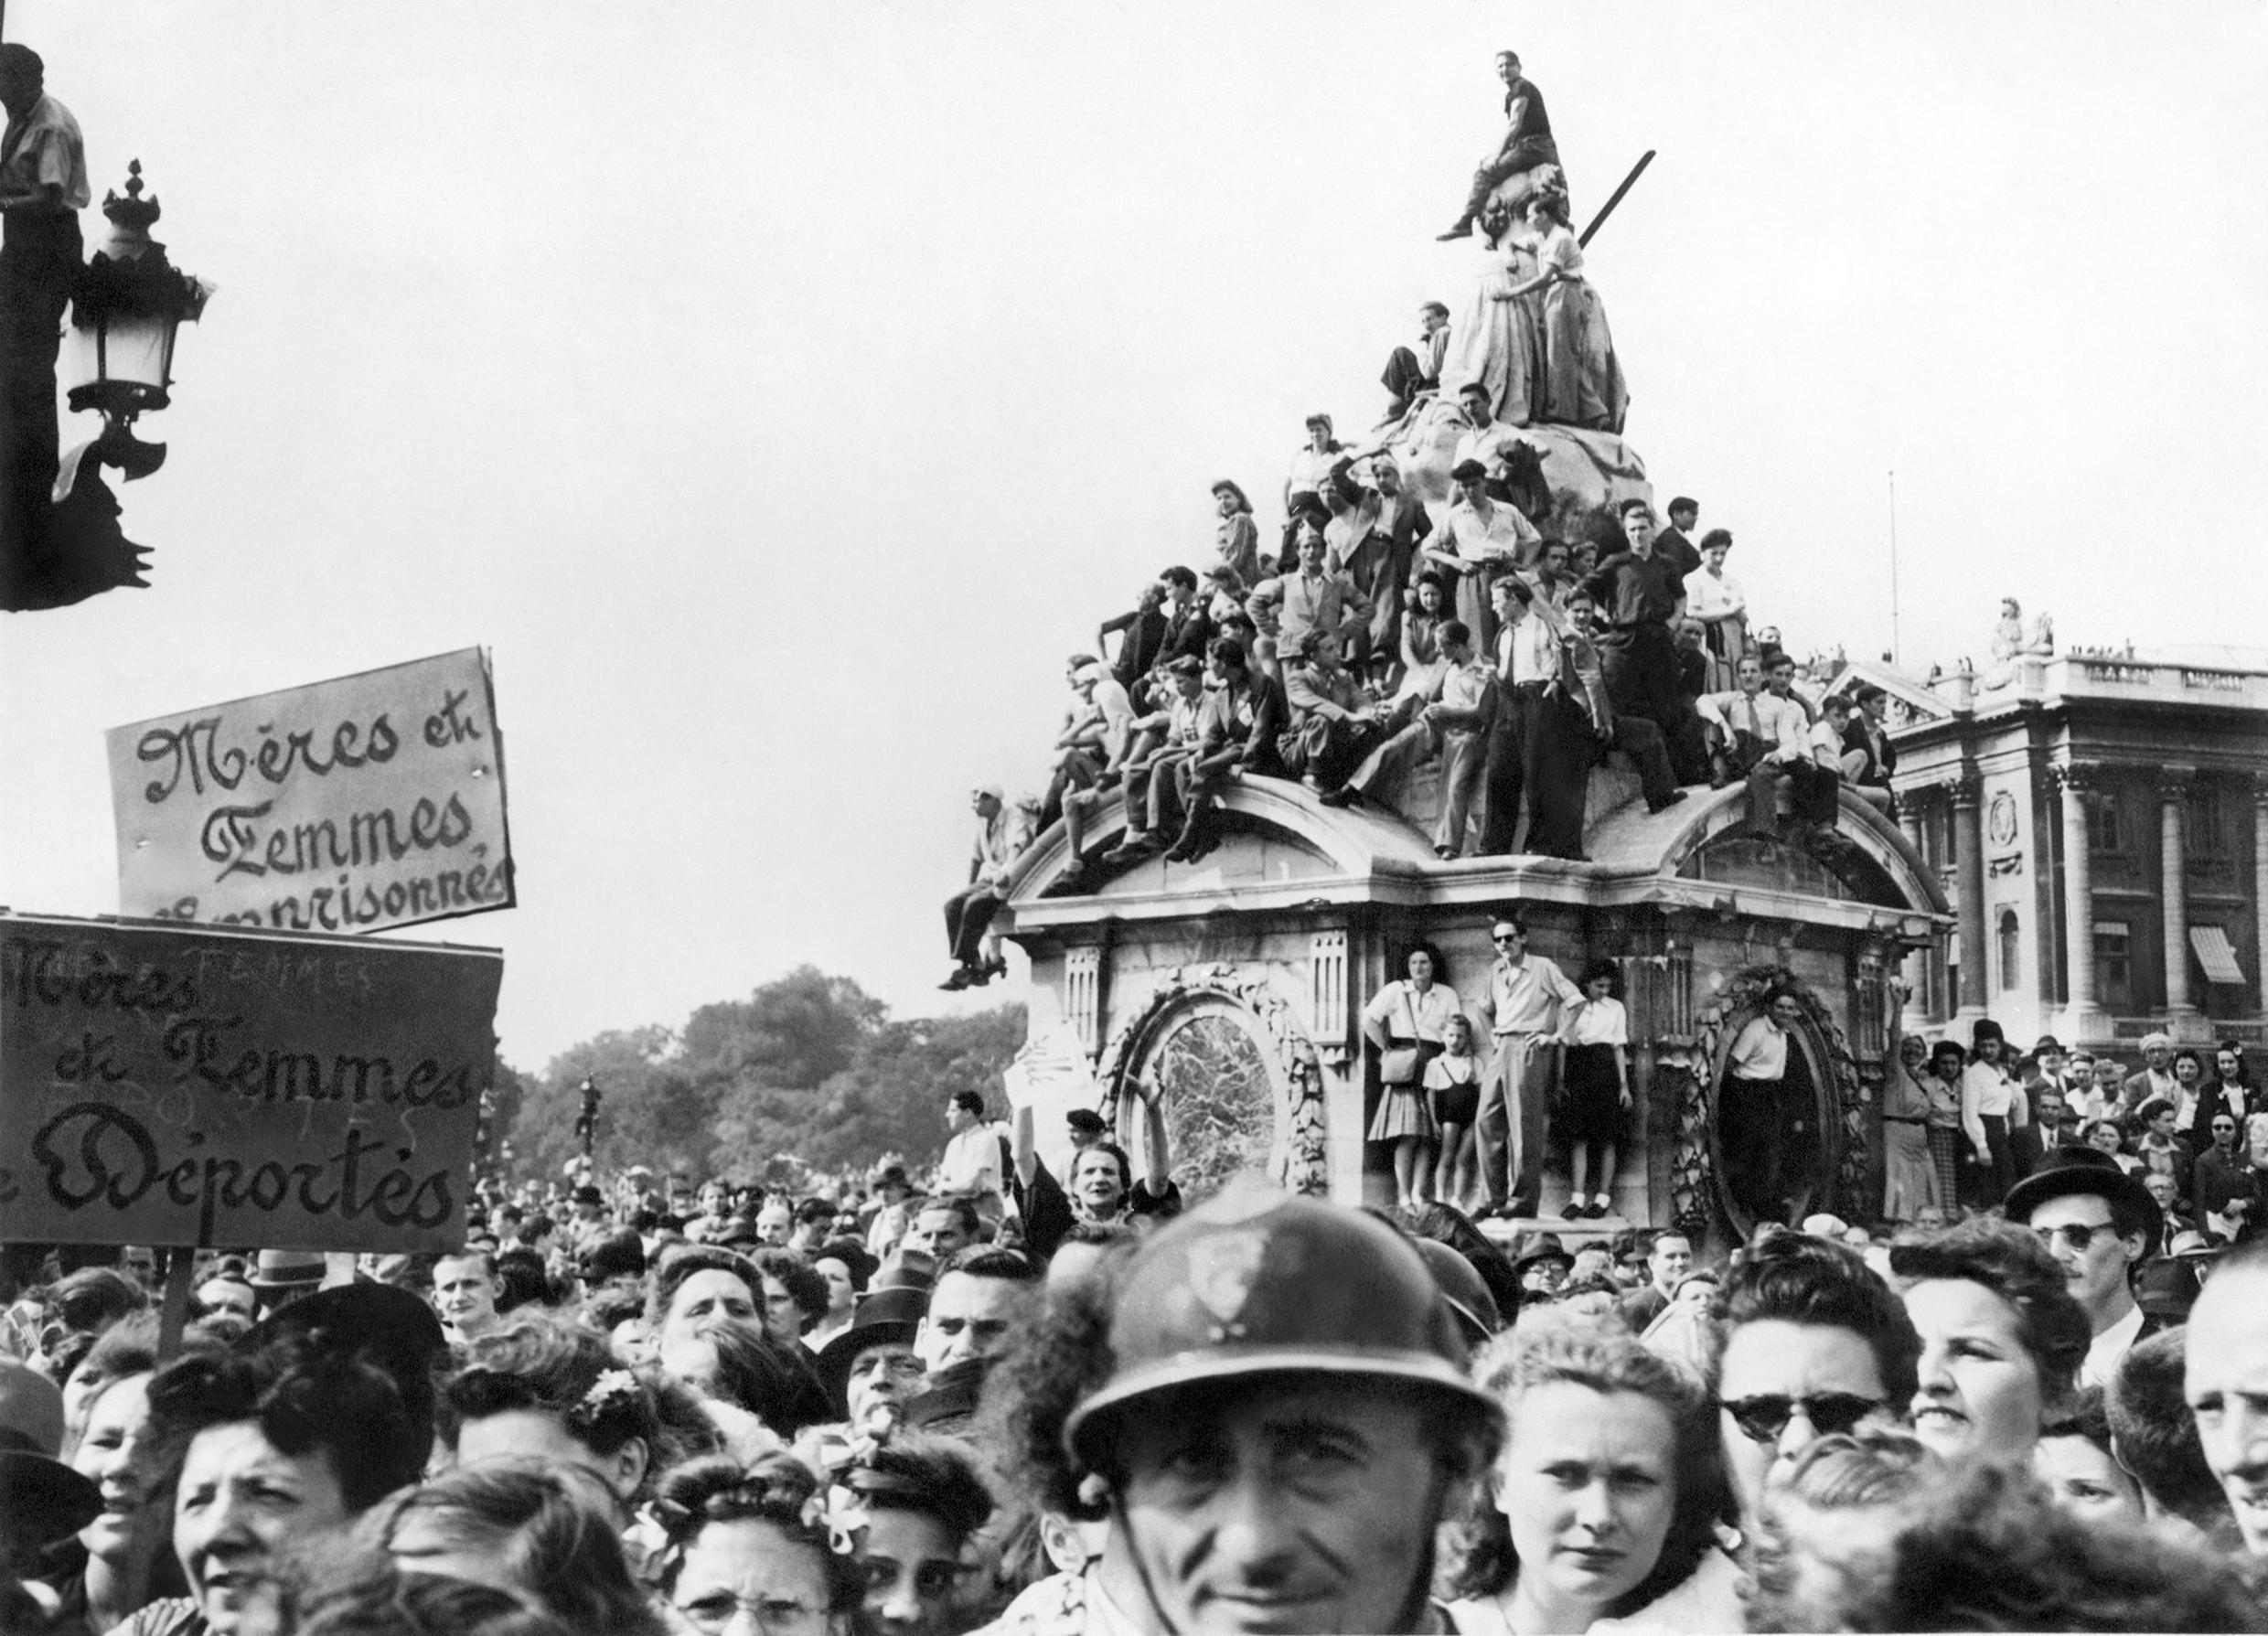 On August 26, 1944 Parisians cheer for General Charles De Gaulle, President of French Committee of Liberation, as he passes by Place Concorde at the head of the Victory Parade in Paris during the Liberation of the French capital.